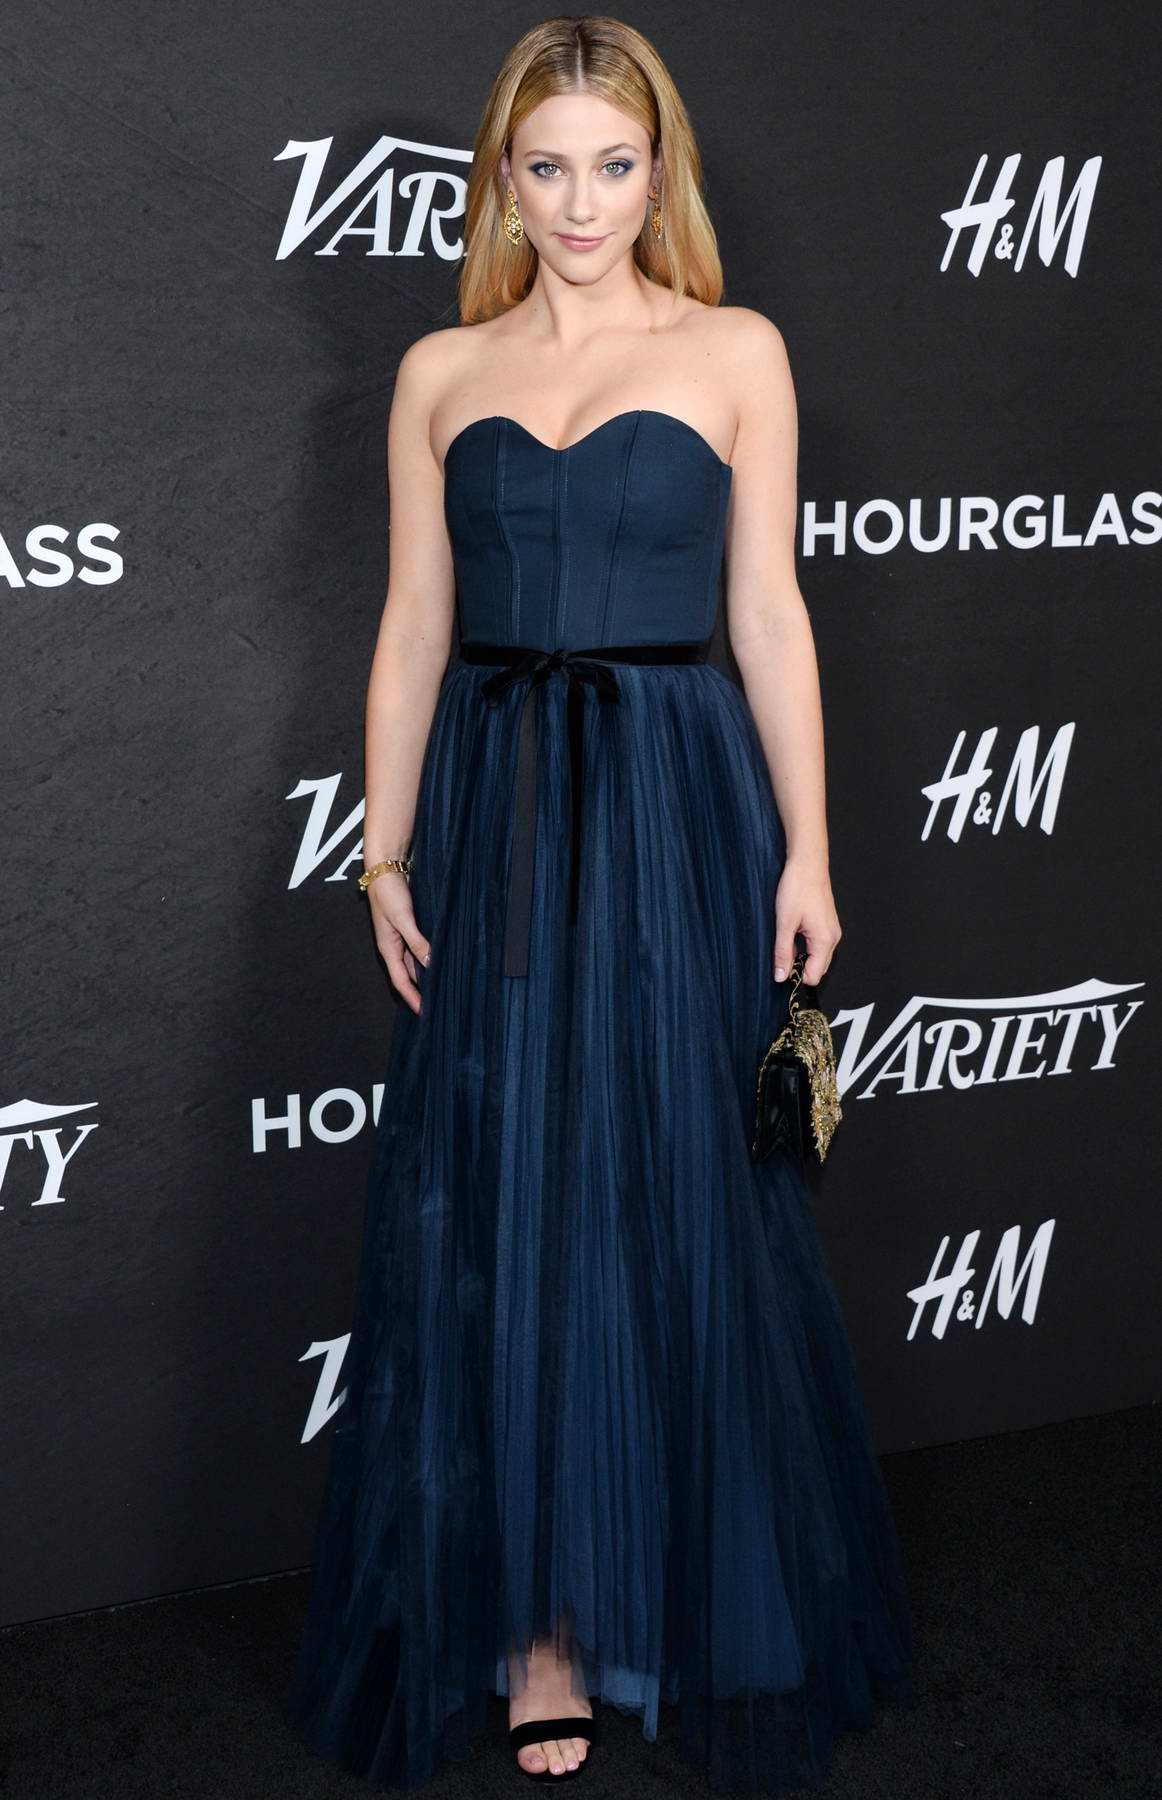 Lili Reinhart attends 'Variety Annual Power of Young Hollywood' in Los Angeles